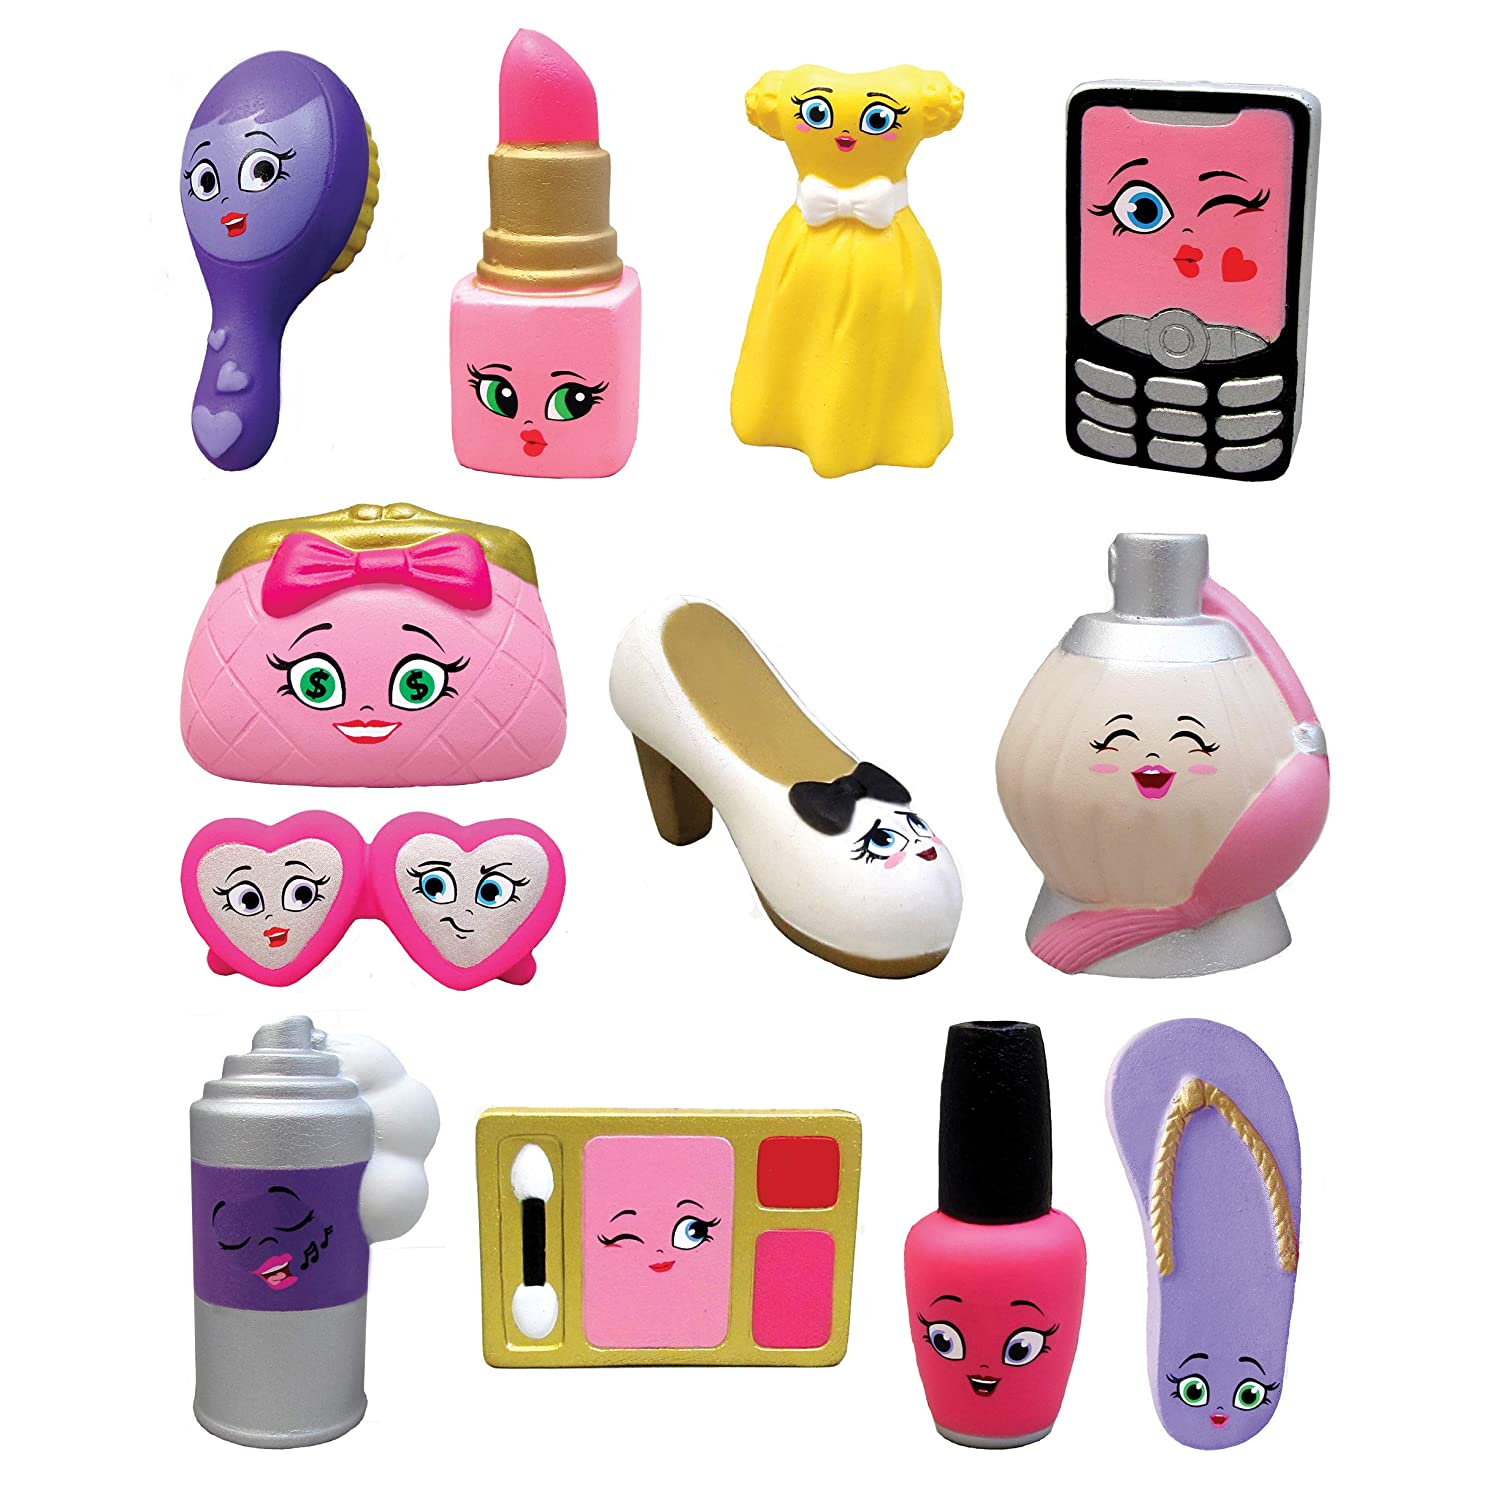 Pack of 5 Multicolor NEW DIMENSIONS TOYS Series 4 Accessories New Dimensions ND2007-5P Kawaii Squeezies